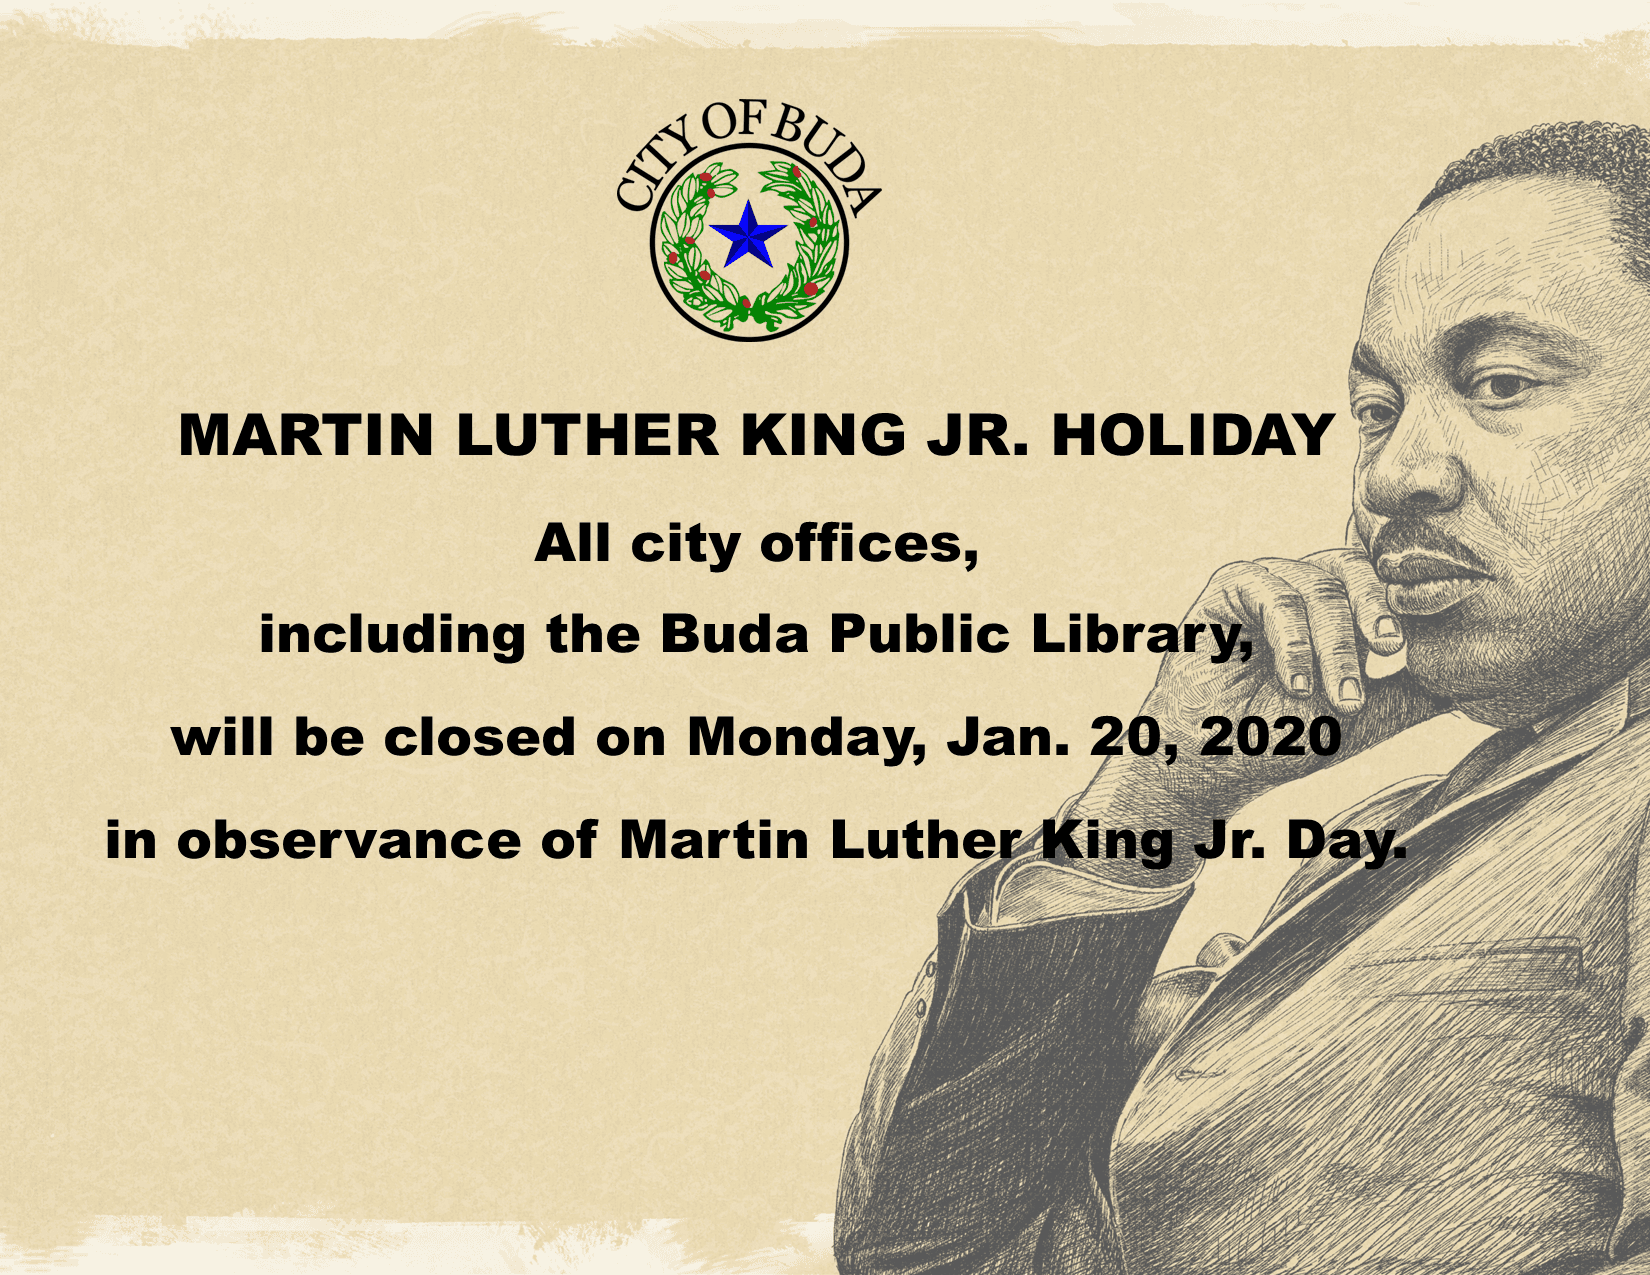 Martin Luther King Jr. Holiday Schedule